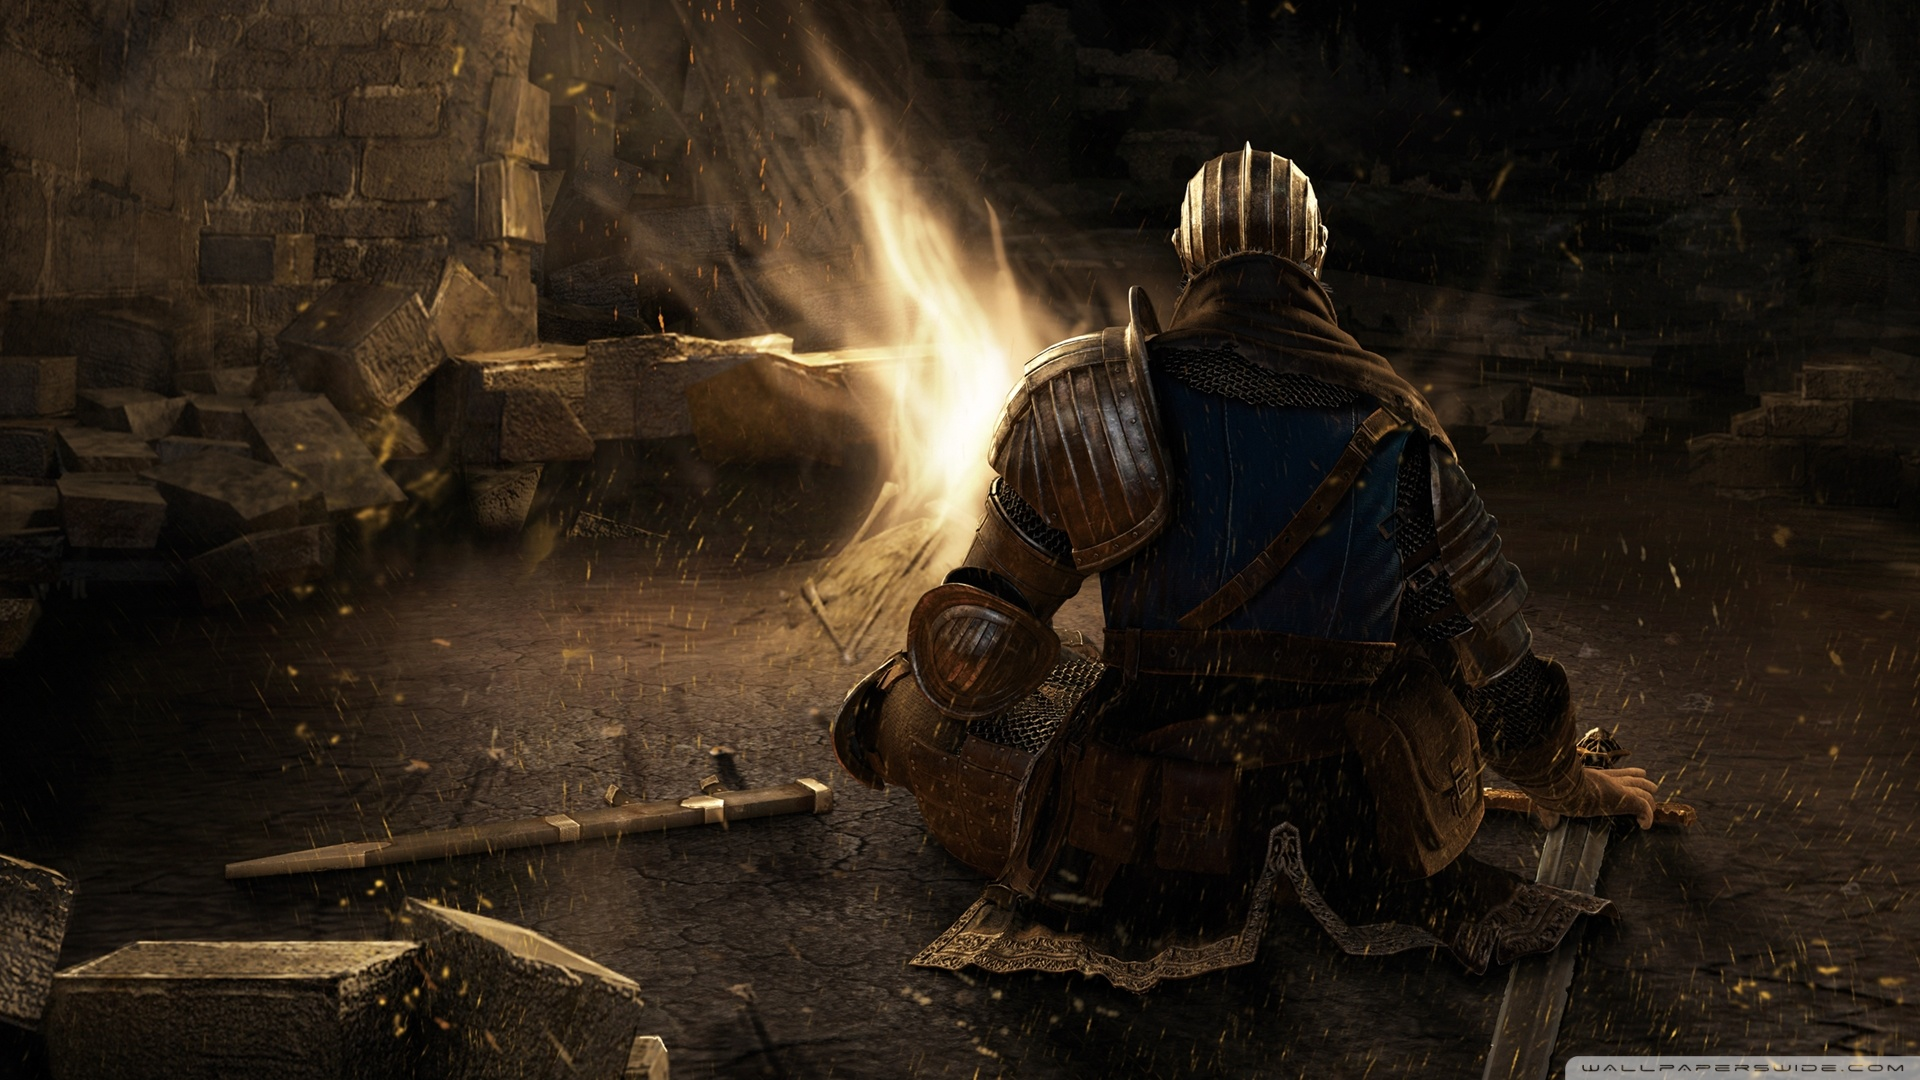 dark_souls-wallpaper-1920x1080